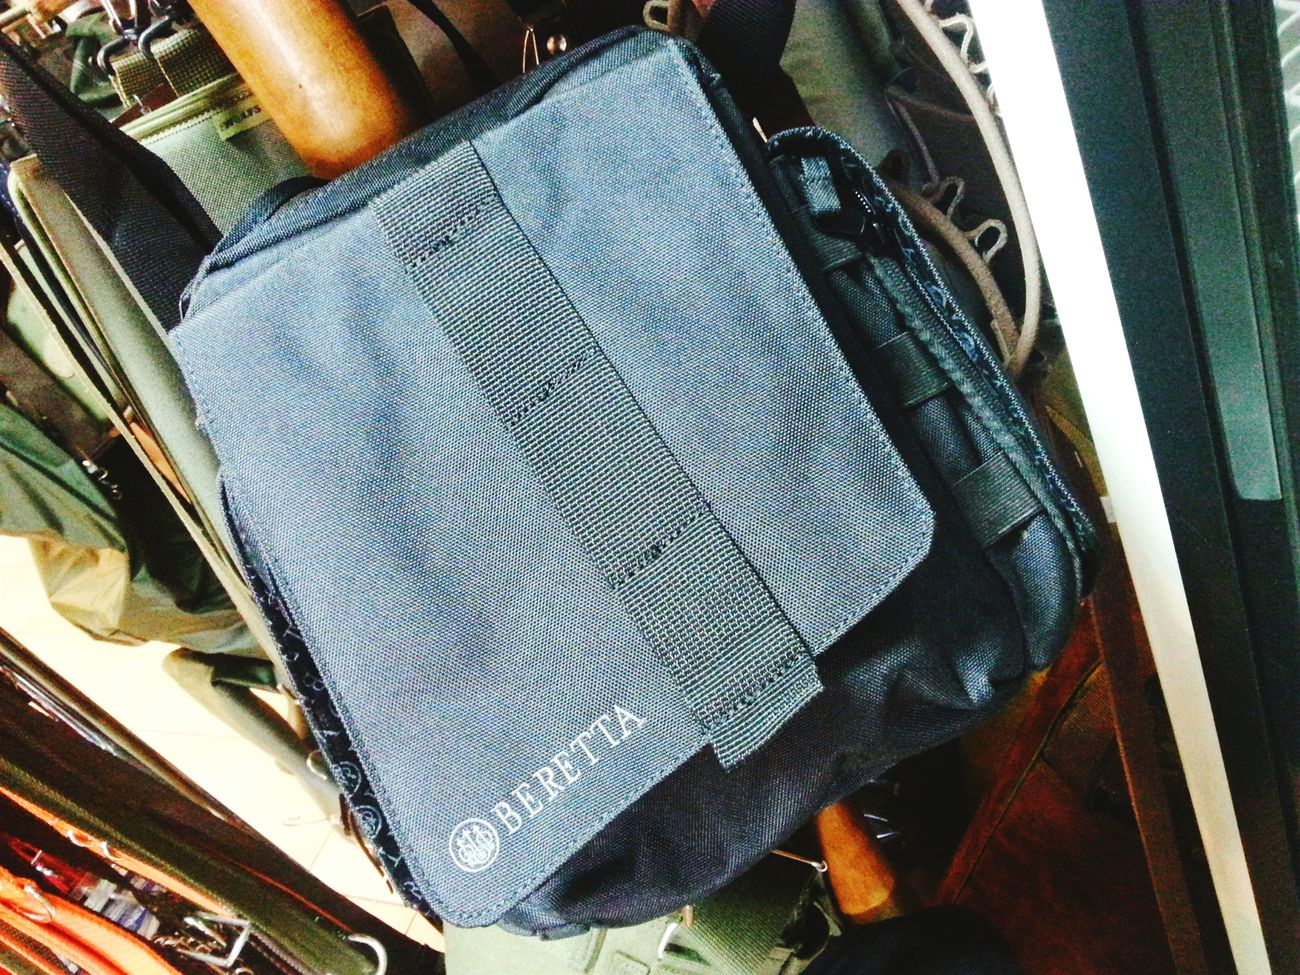 AmmoBag of Beretta - now also in Hubertech , Katowice, Poland